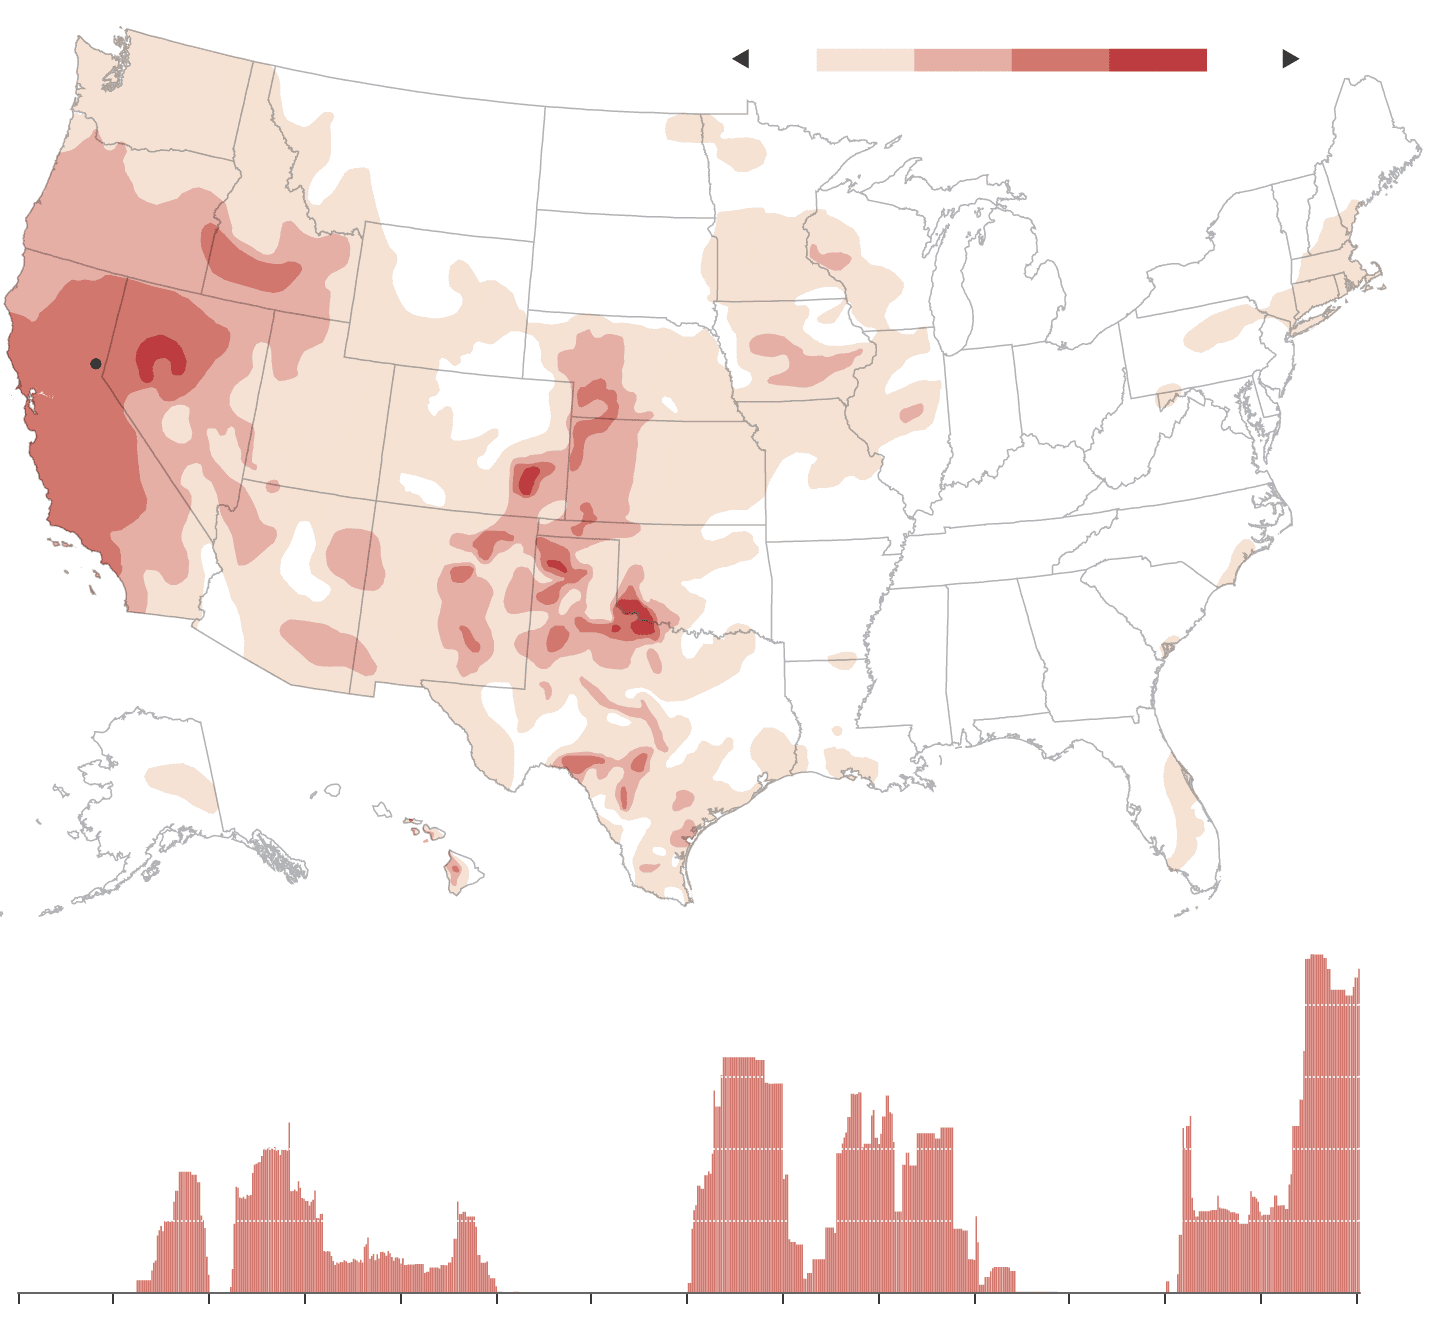 http://www.nytimes.com/2014/01/18/us/as-californias-drought-deepens-a-sense-of-dread-grows.html